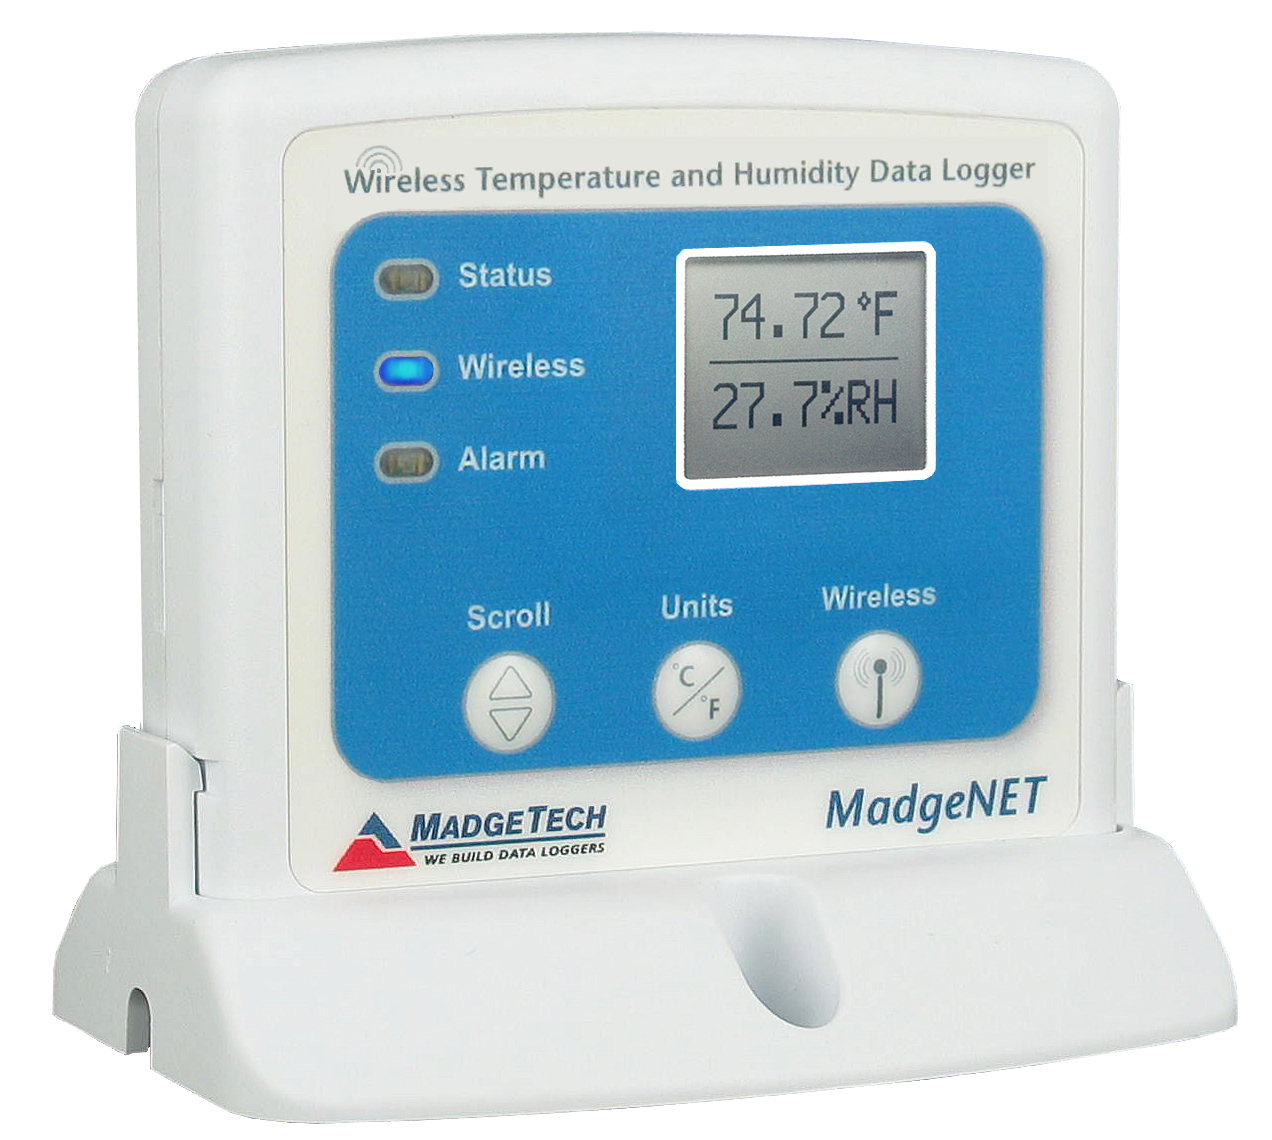 Matrec141 Madgetech Rfrhtemp2000a Wireless Temperature And Humidity Pic Logger Data Loggers